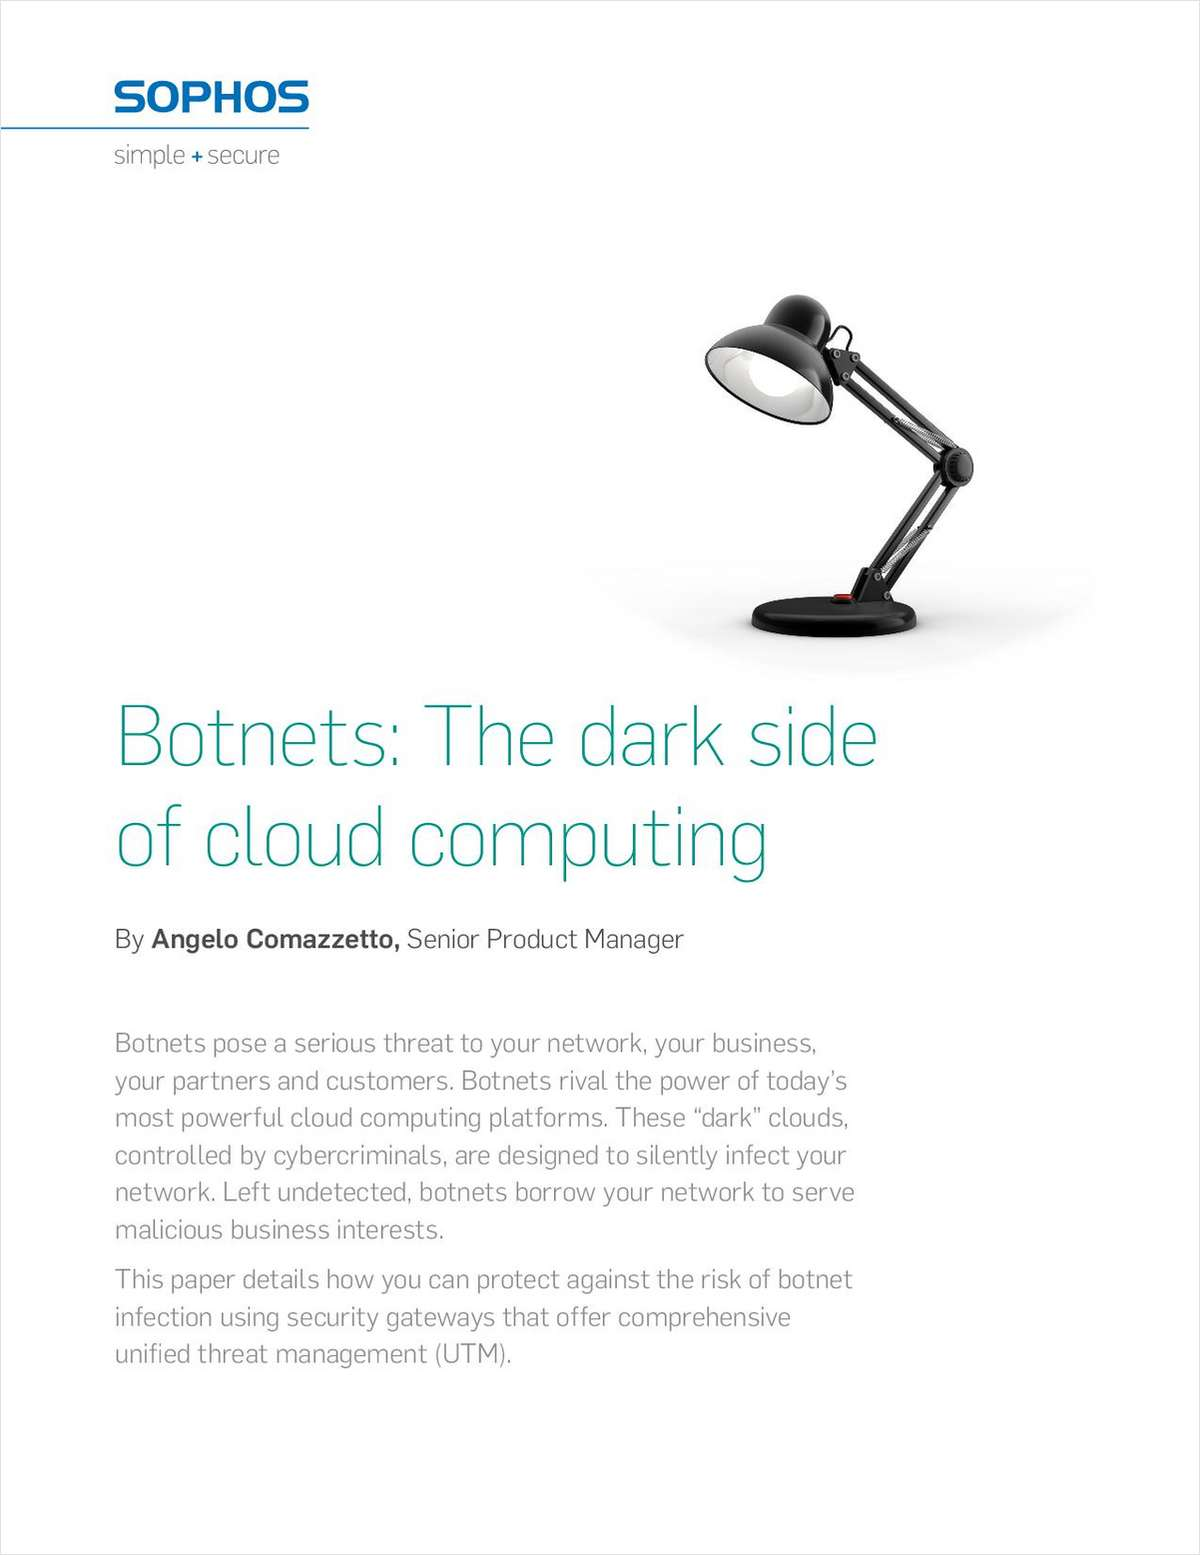 Botnets: The Dark Side of Cloud Computing